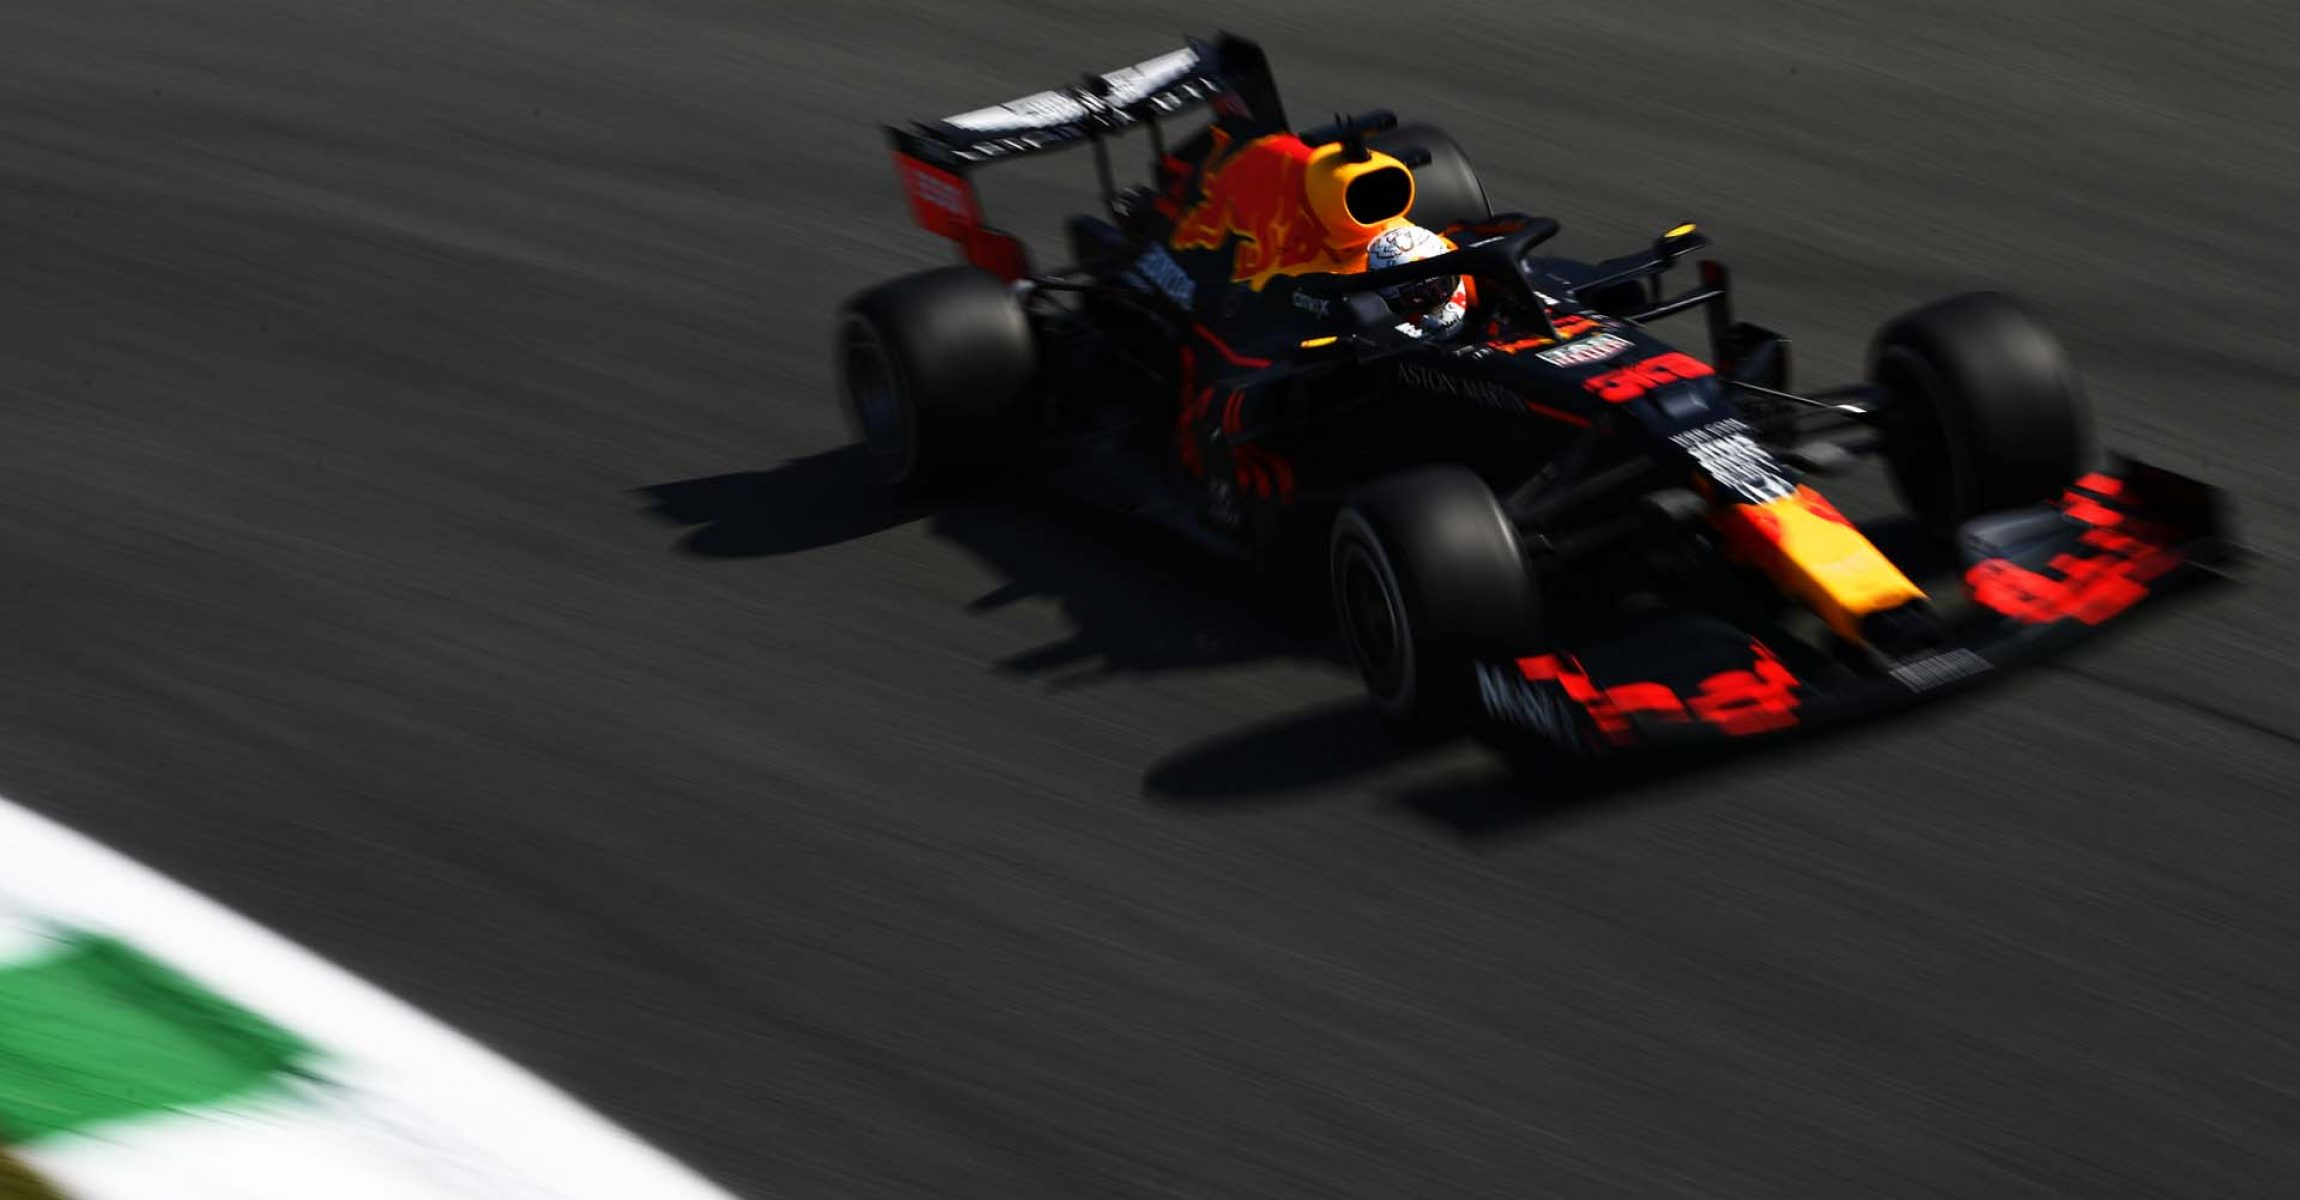 MONZA, ITALY - SEPTEMBER 04: Max Verstappen of the Netherlands driving the (33) Aston Martin Red Bull Racing RB16 during practice for the F1 Grand Prix of Italy at Autodromo di Monza on September 04, 2020 in Monza, Italy. (Photo by Rudy Carezzevoli/Getty Images)